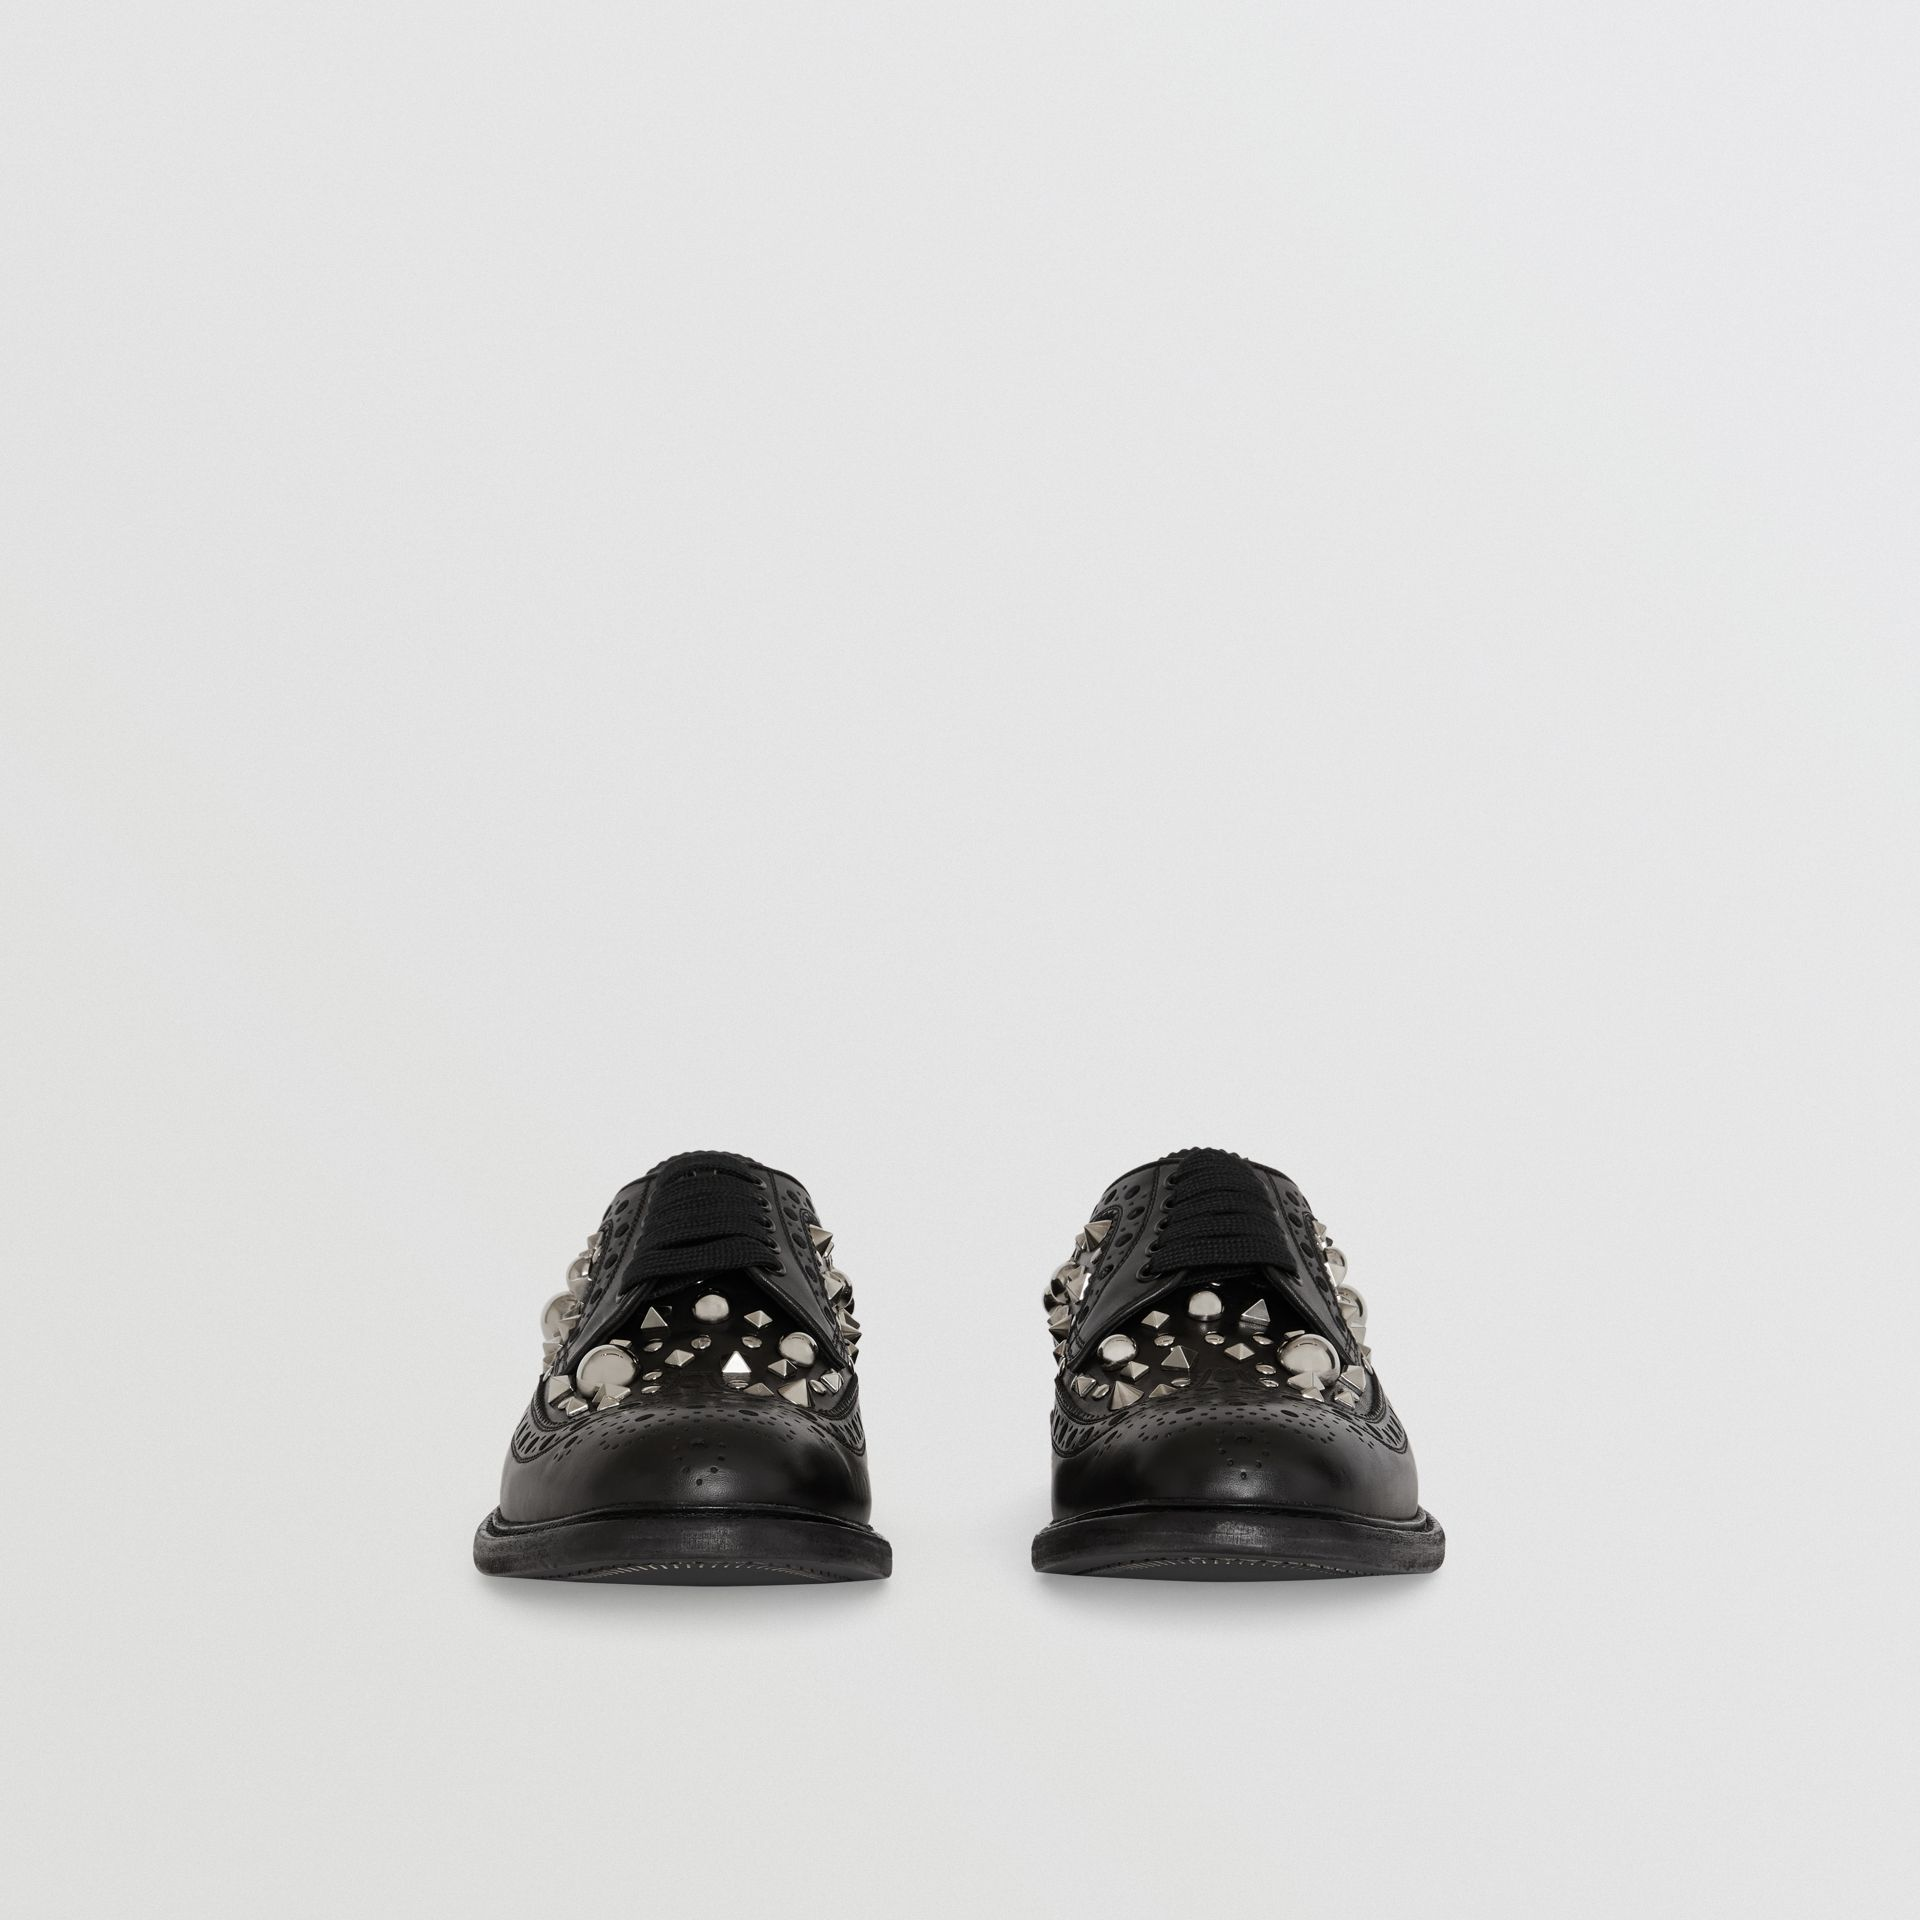 Stud Detail Leather Brogues in Black - Men | Burberry - gallery image 3